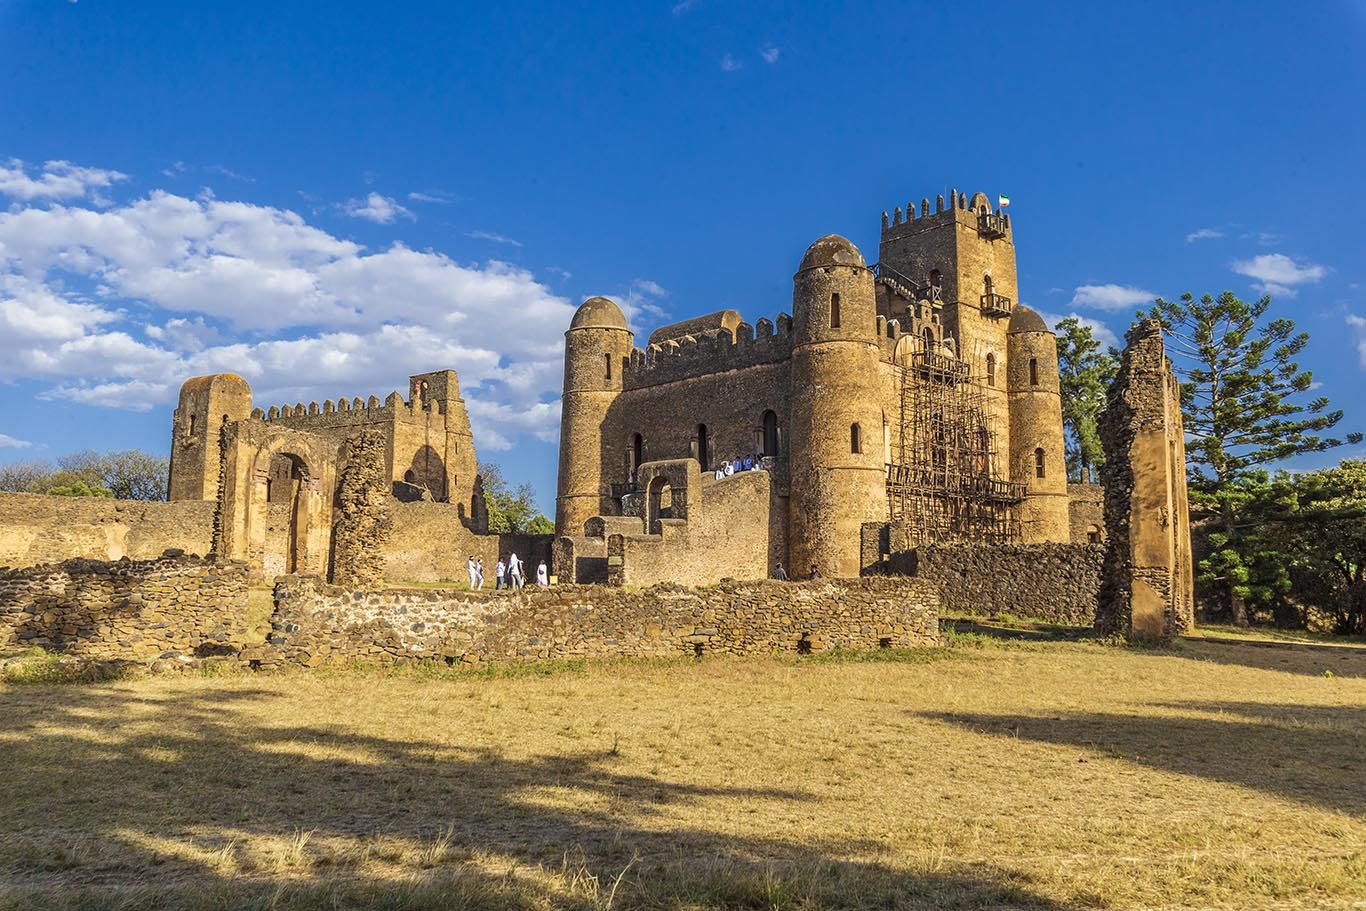 DAY3: Getting the feel of Ethiopia – Travel around the globe